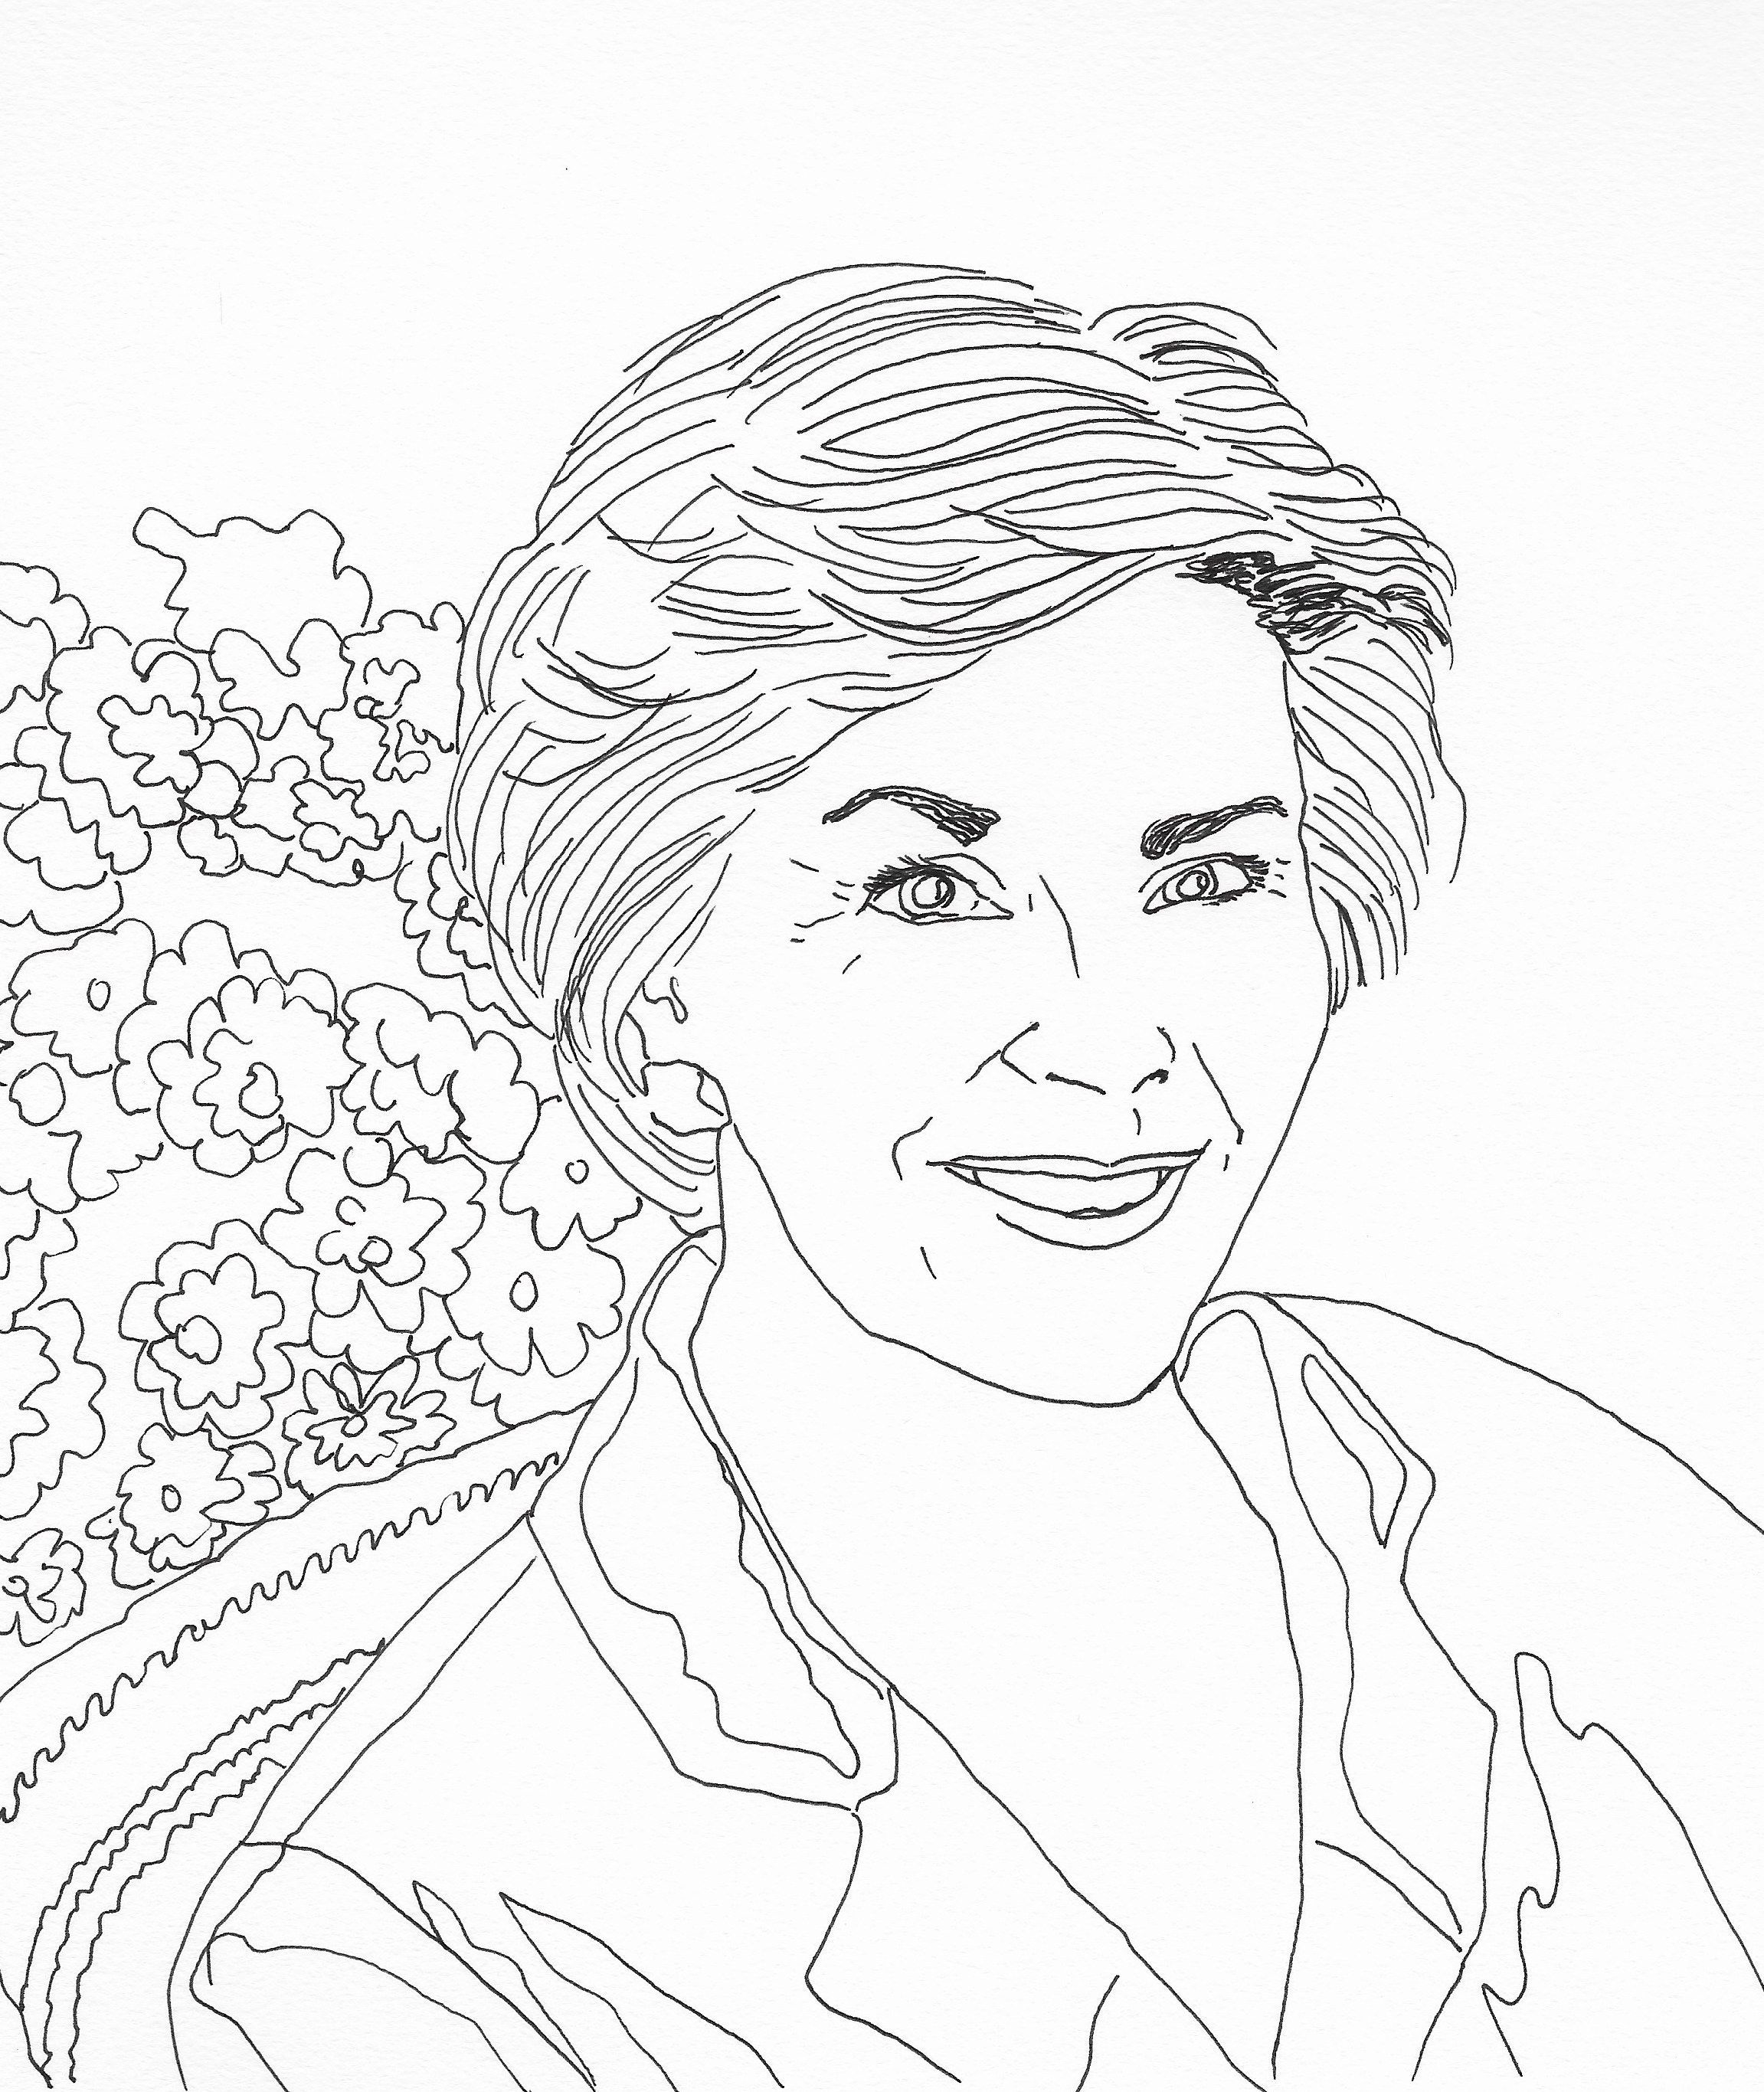 Laura lane welch bush first ladies sketches lady presidents